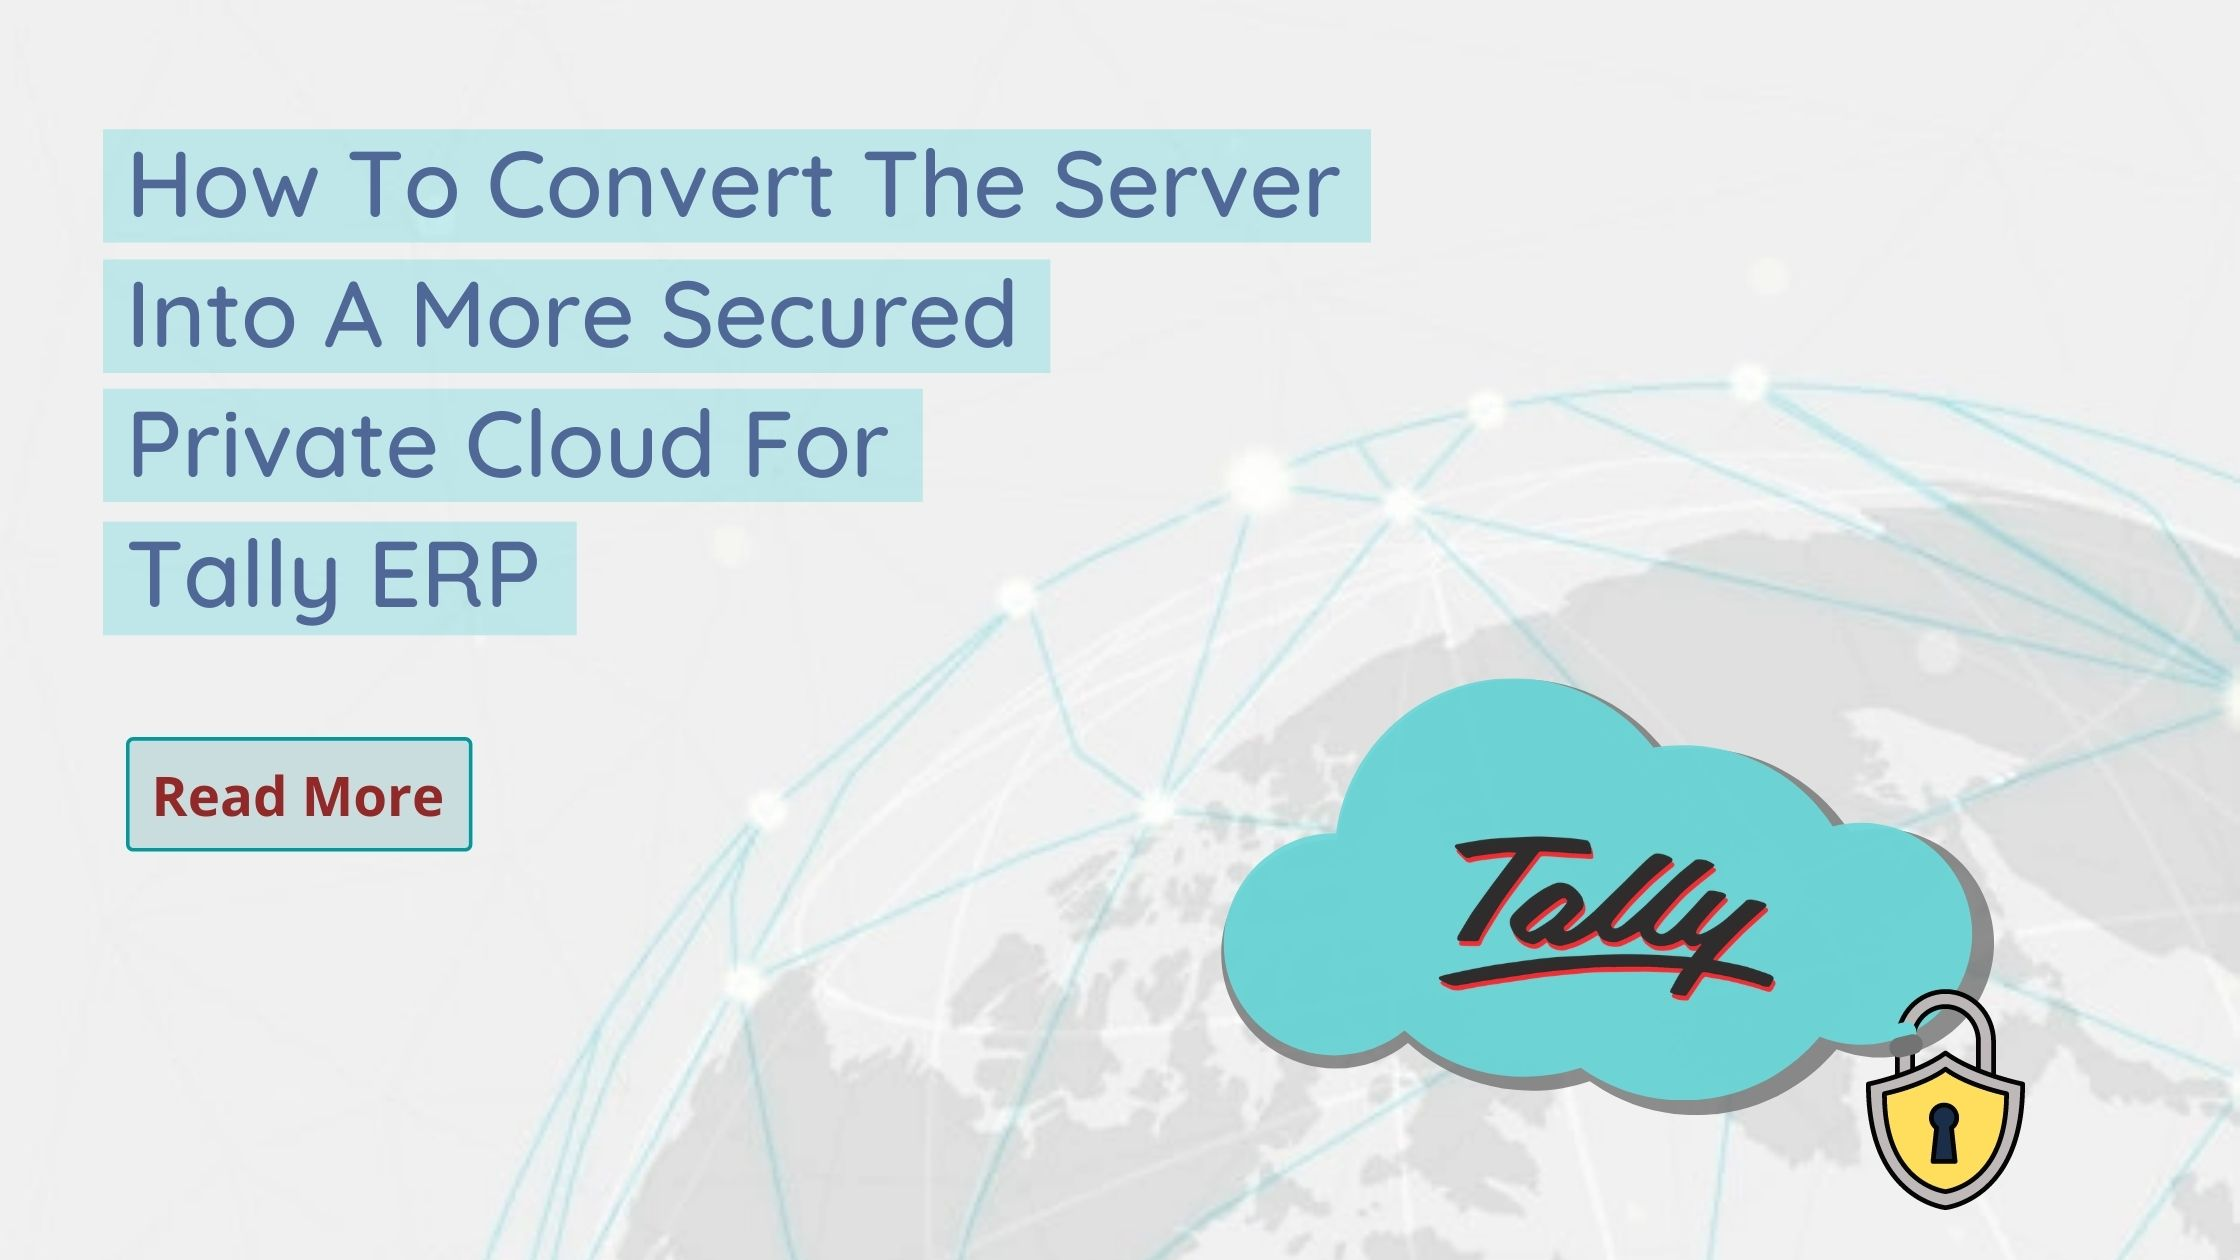 Convert into Private Cloud For Tally ERP